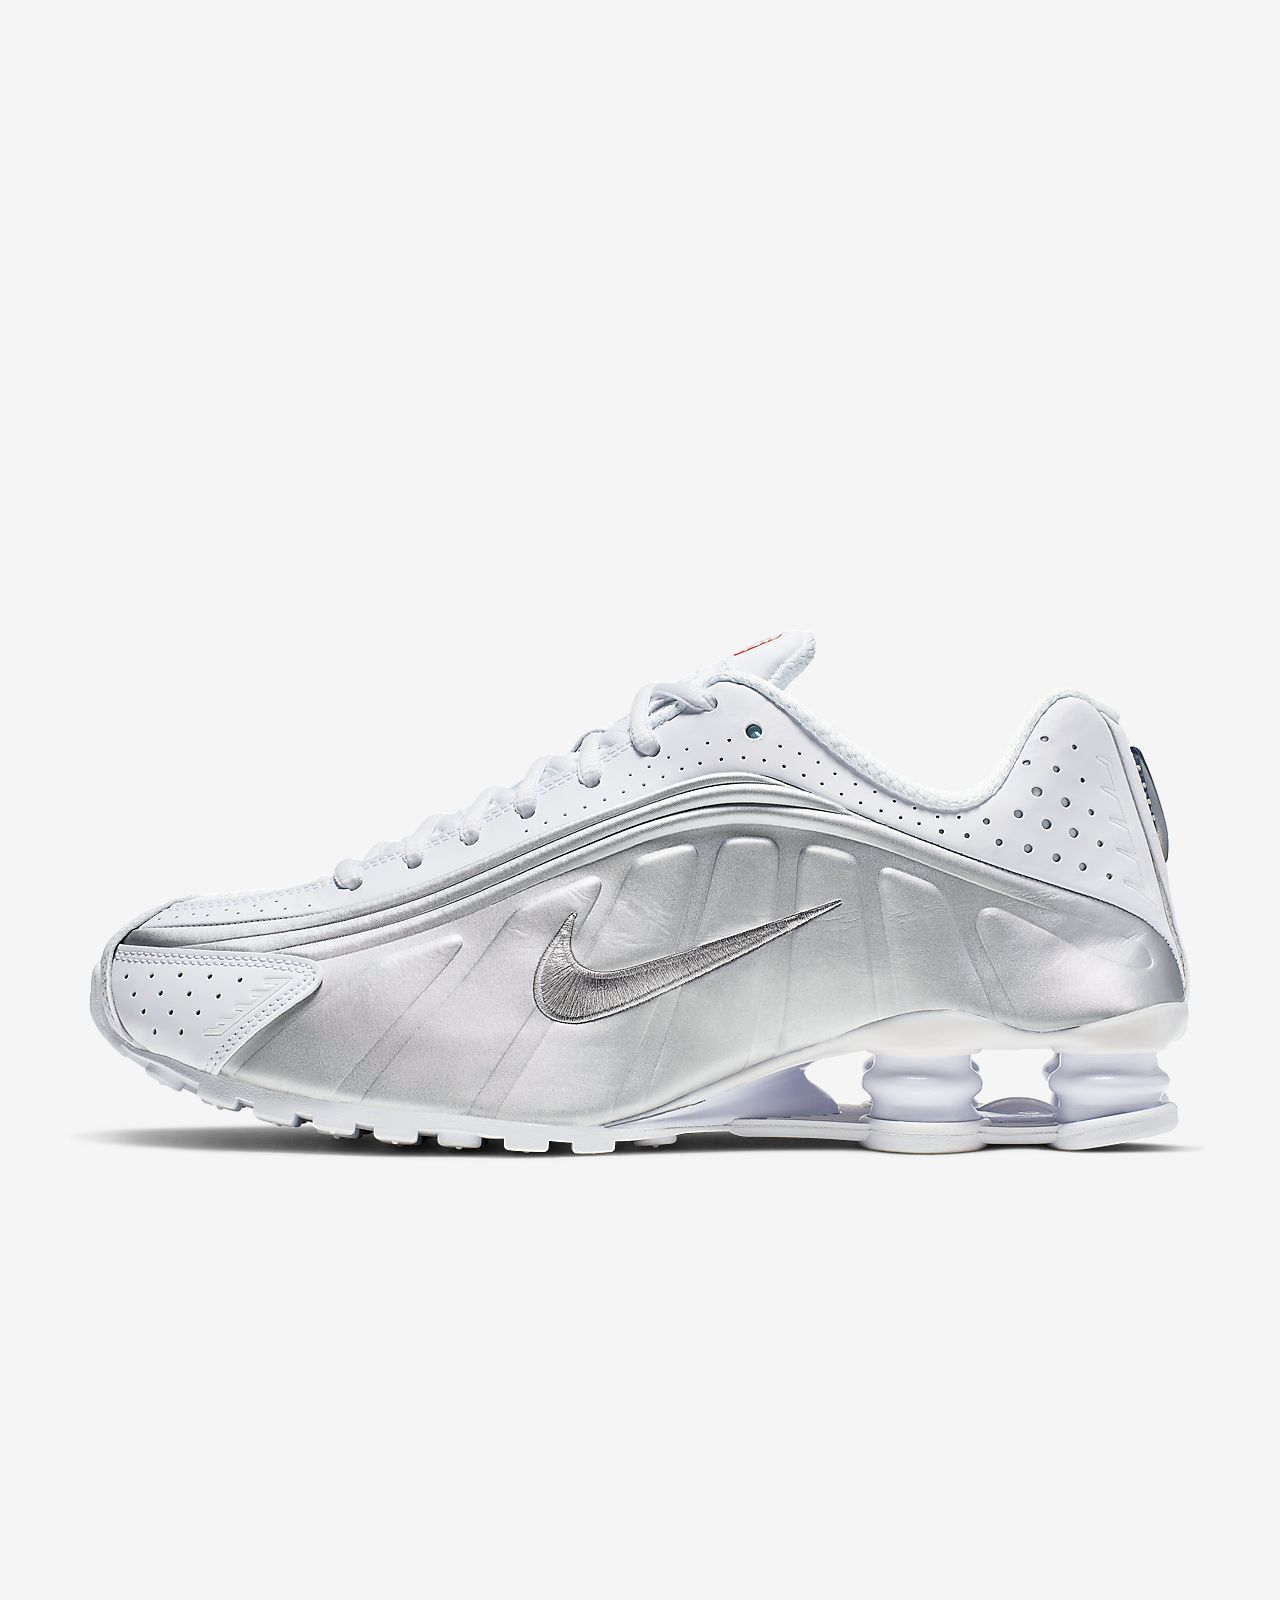 release date cheapest sold worldwide Nike Shox R4 Herrenschuh